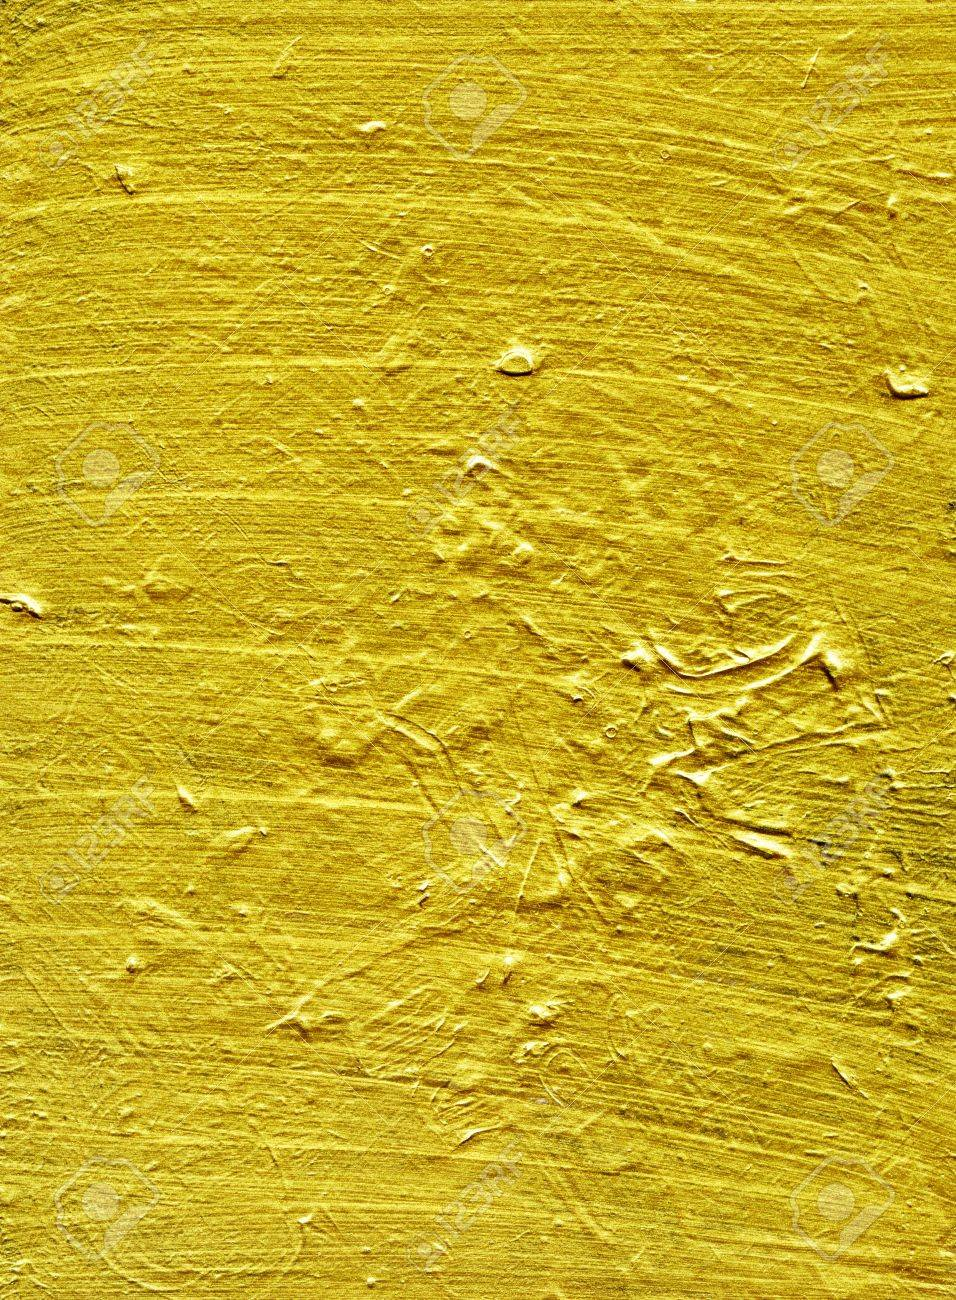 Gold Paint Texture On Old Wooden Panel Stock Photo, Picture And ...